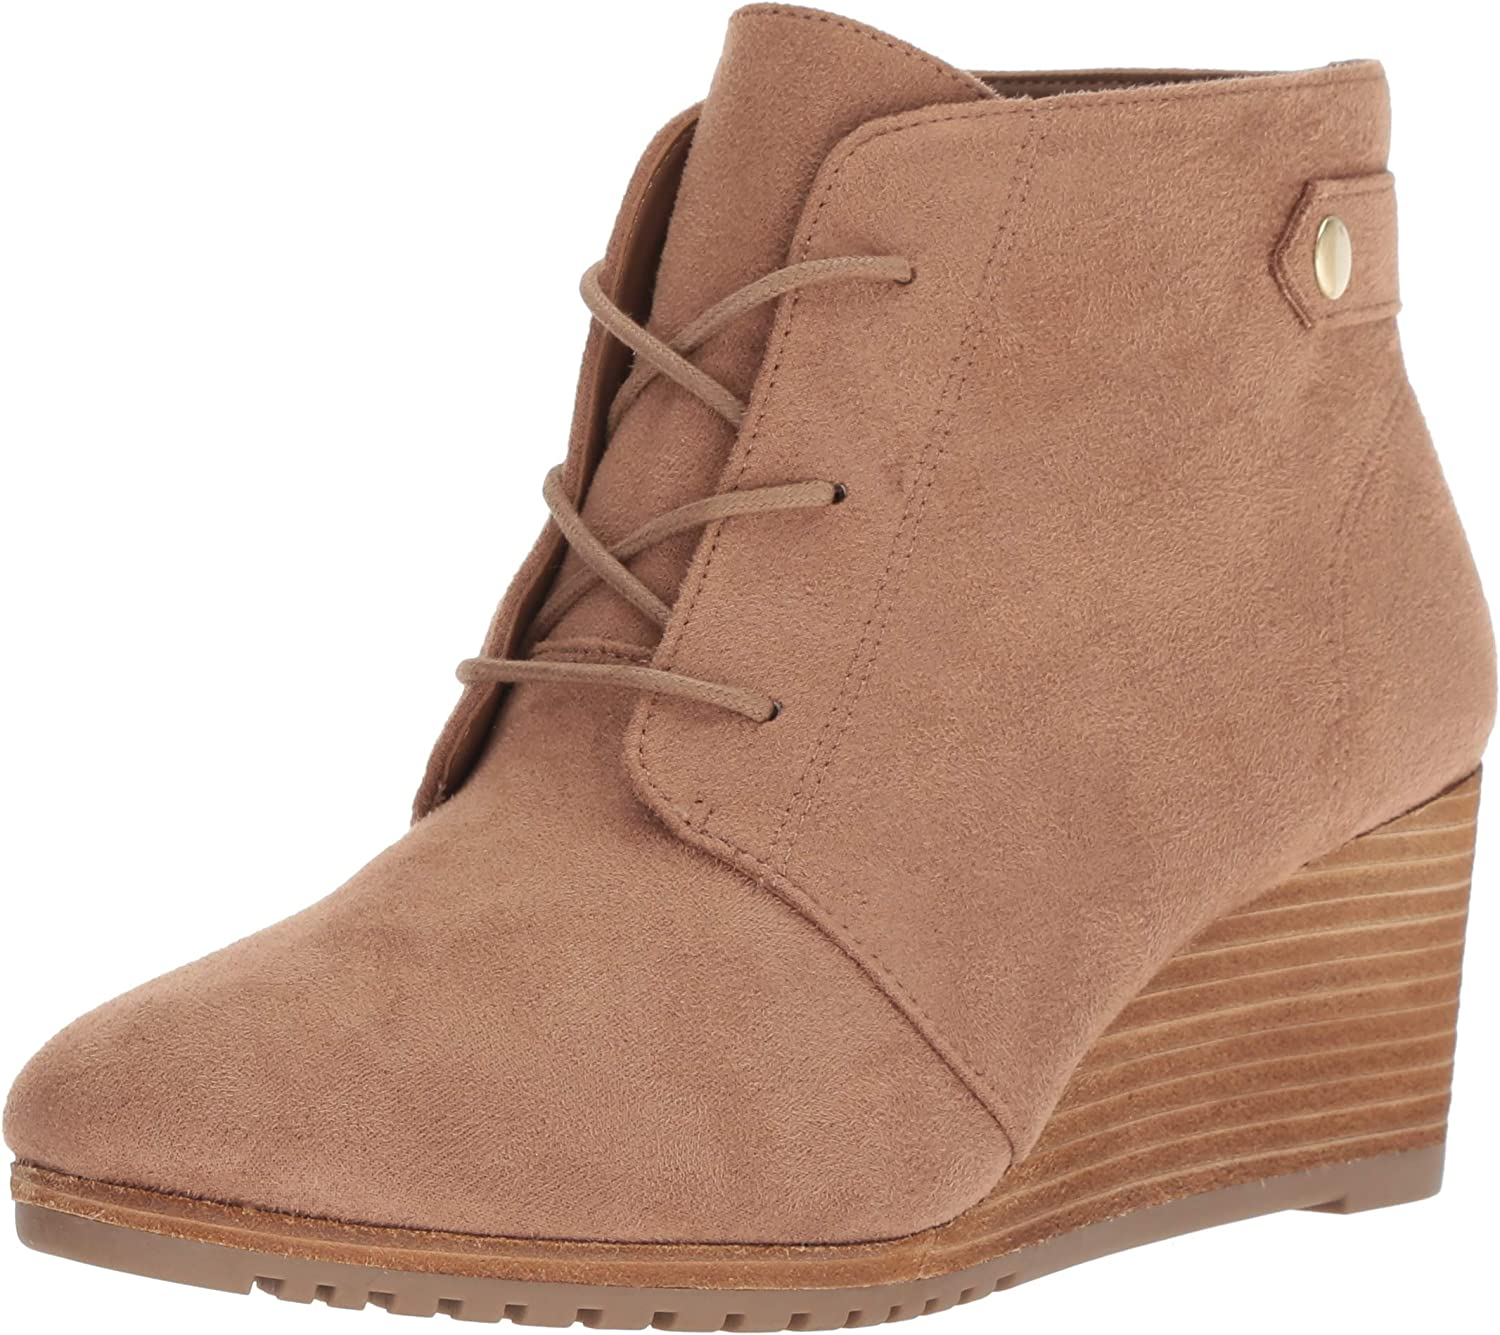 Dr. Scholl's shoes Womens Conquer Ankle Boot